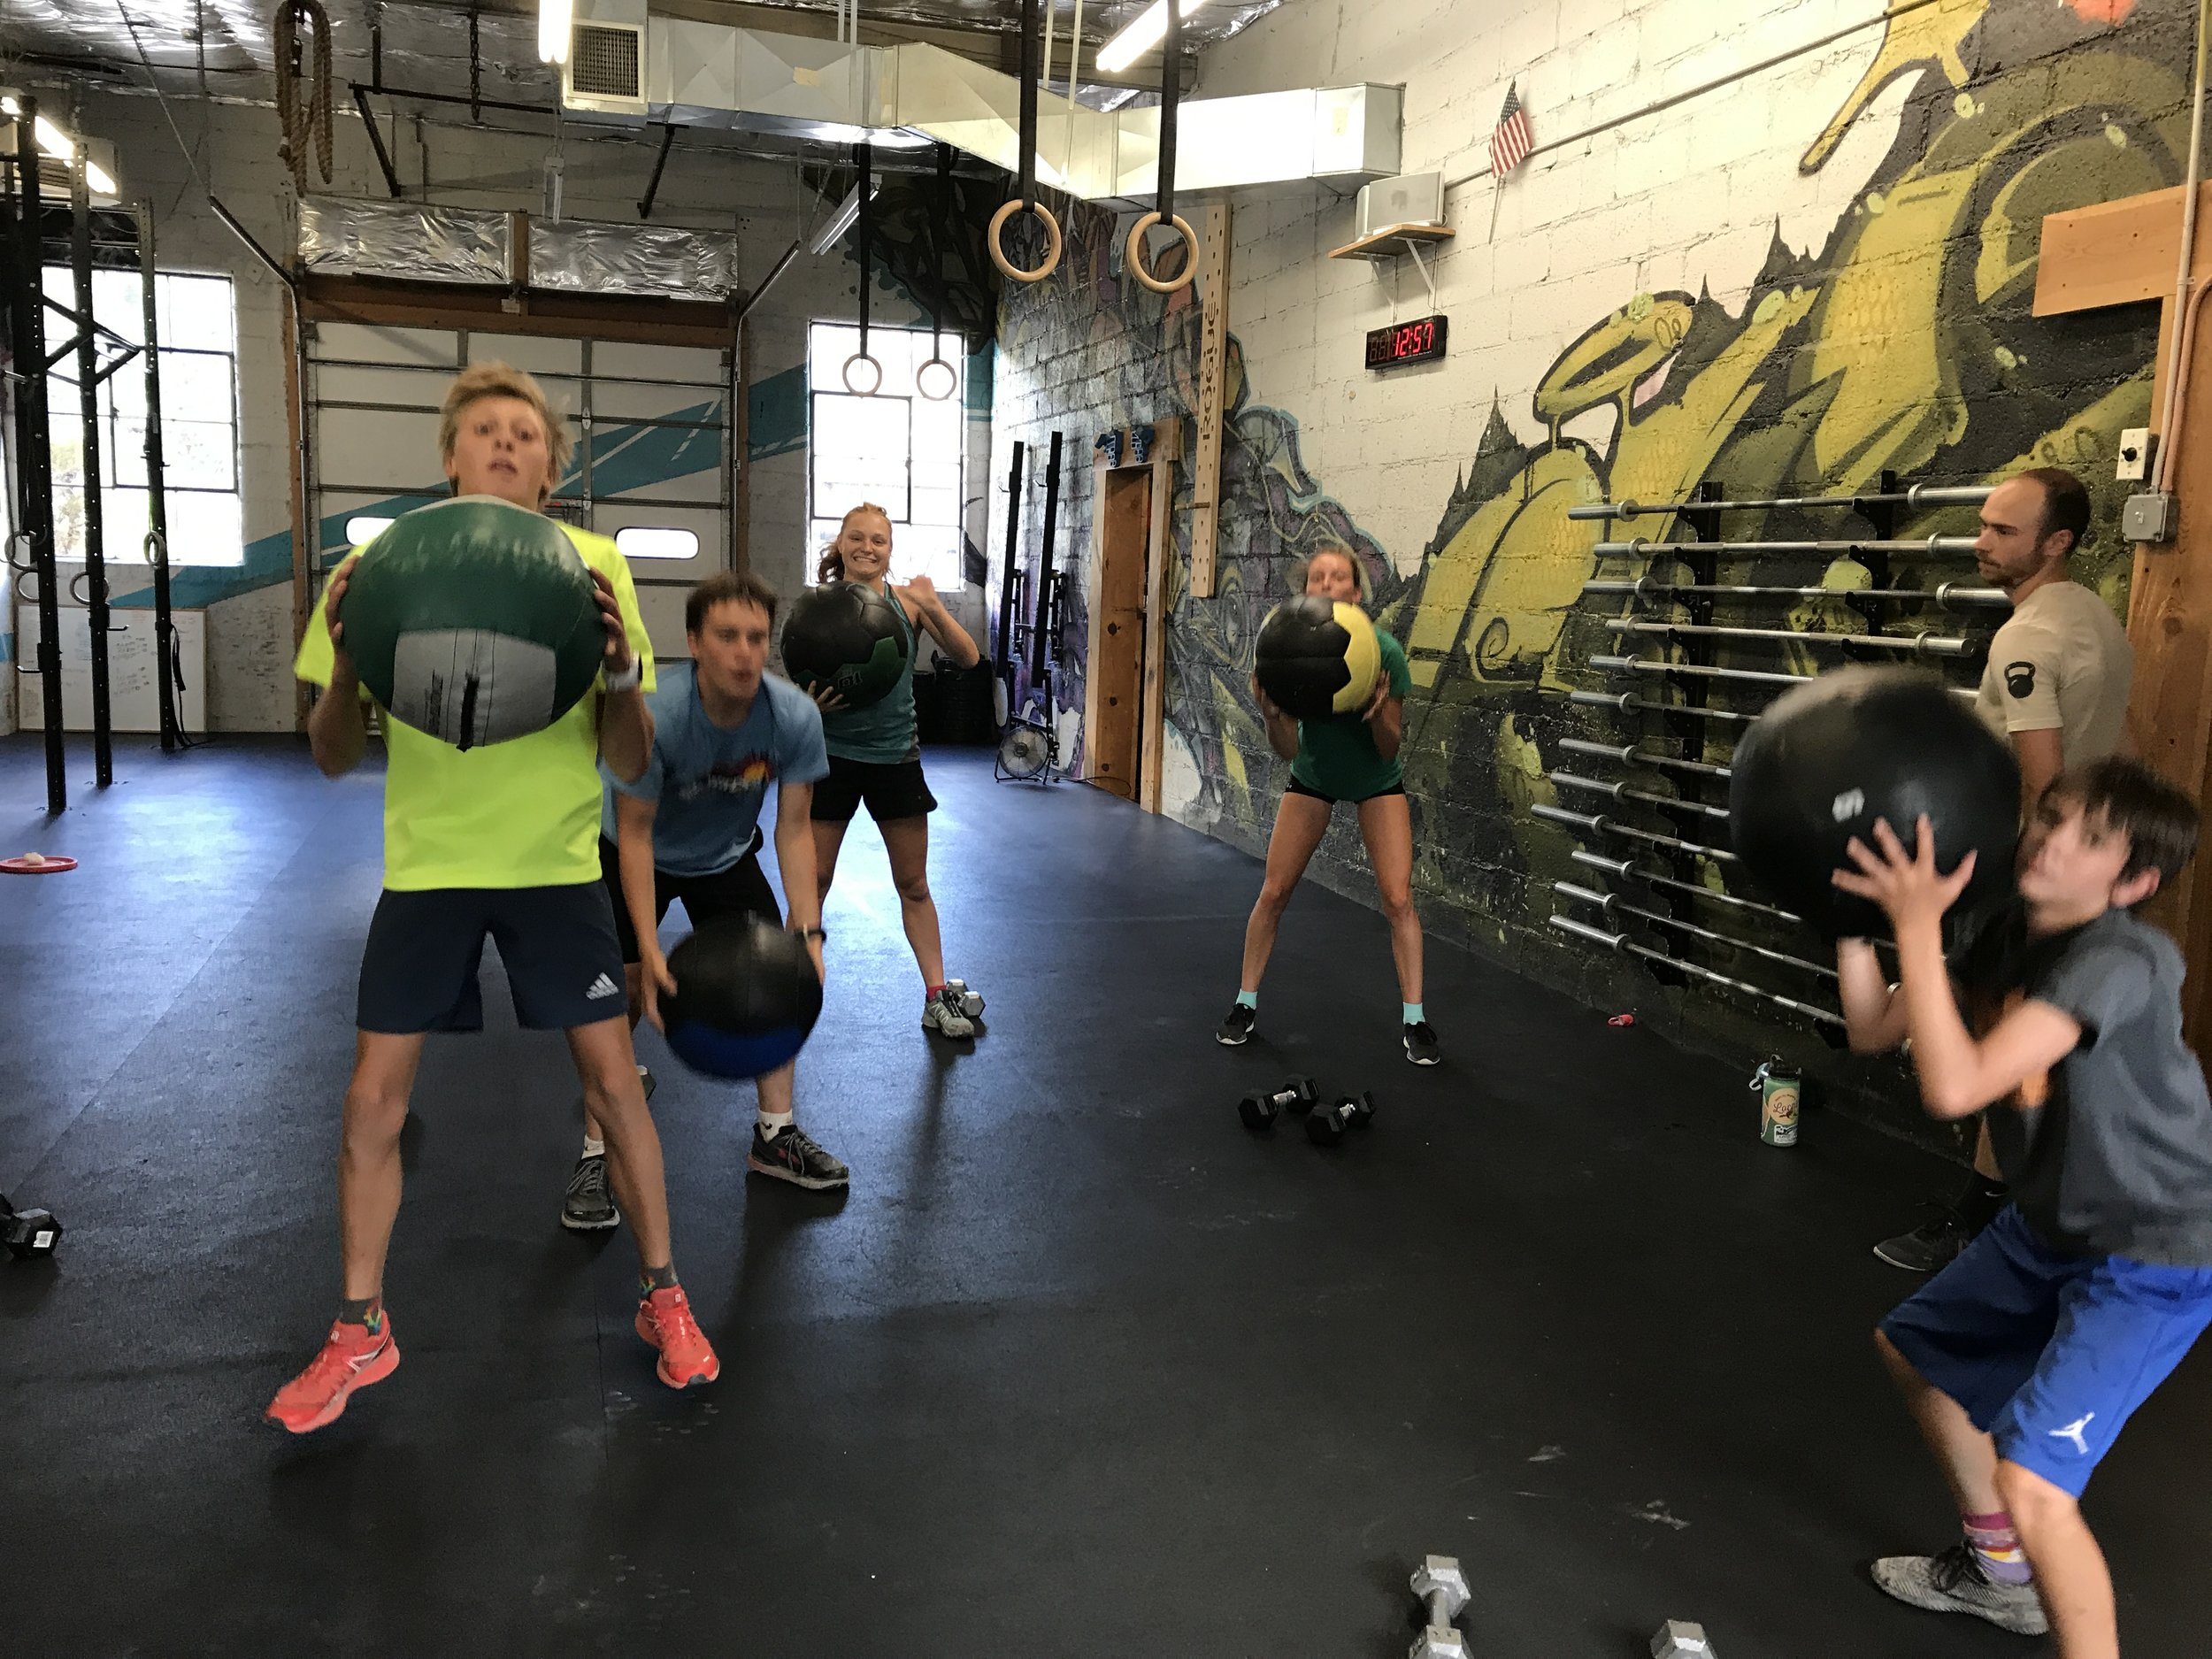 The Durango Nordic Ski Team and the Durango High School Cross-Country Team have been hitting some tough off-season training this summer. These are some MOTIVATED kids.